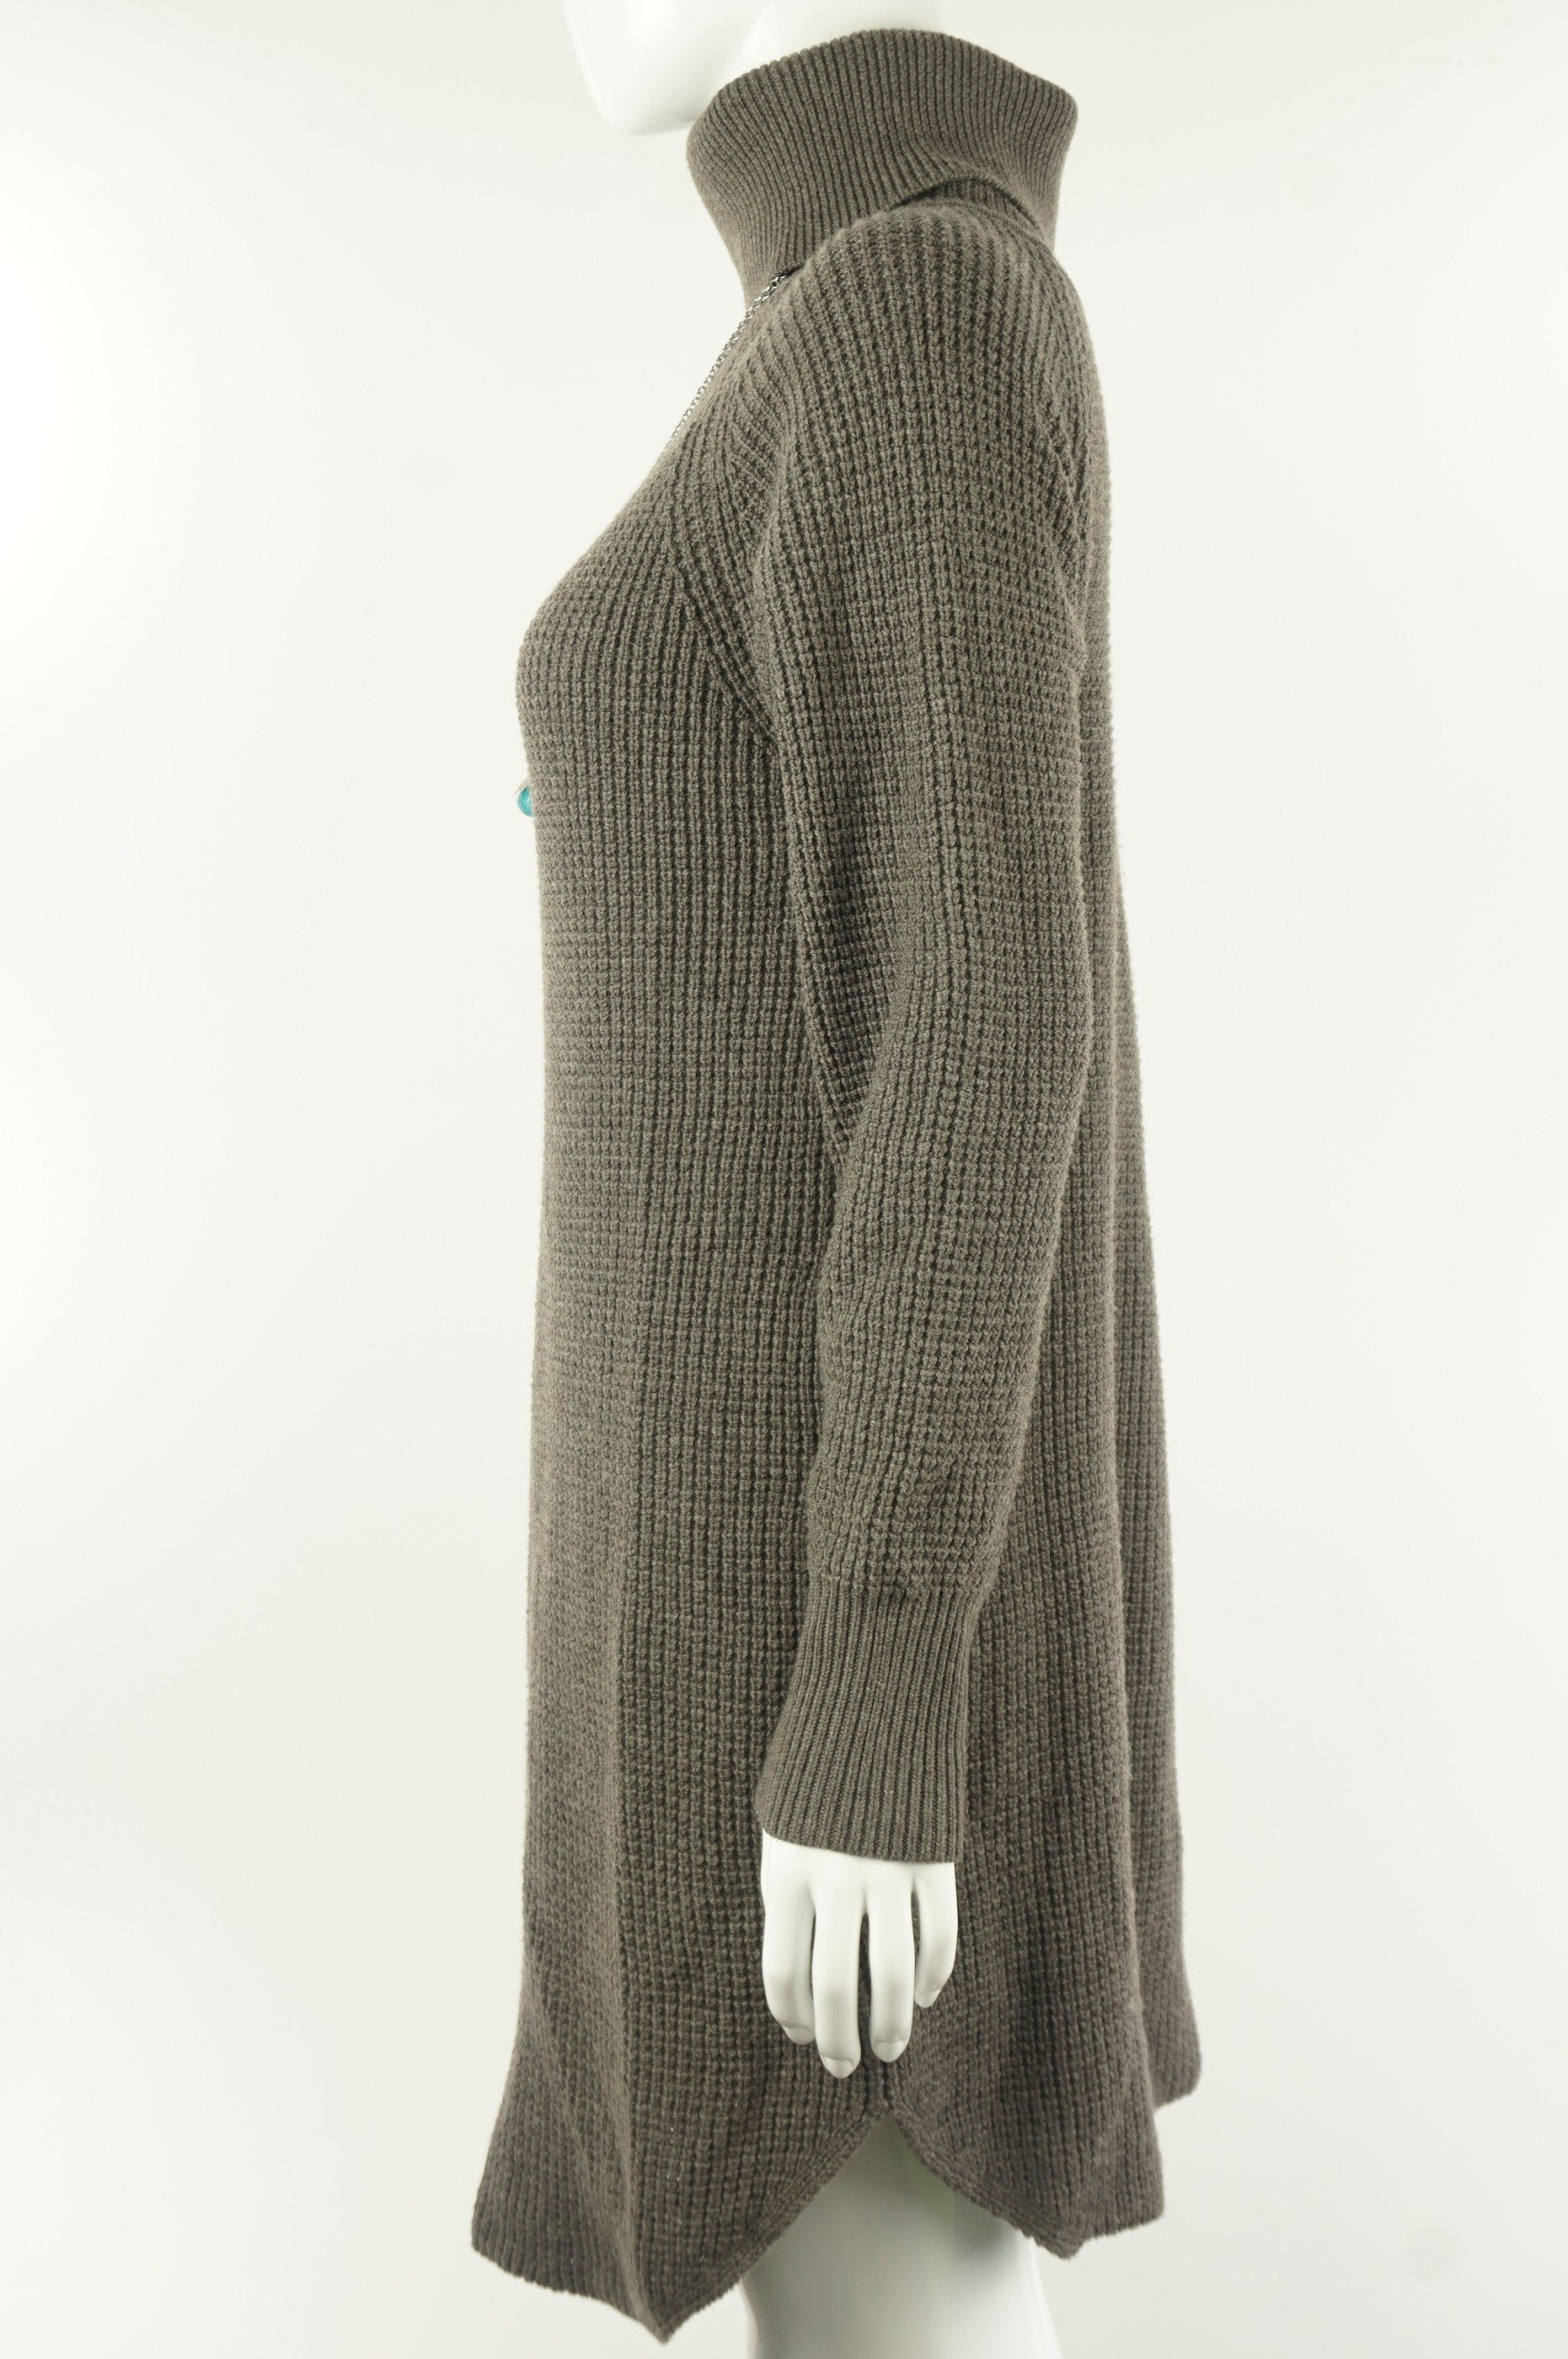 Wilfred Free Long Turtleneck Sweater Dress, Elegant and soft sweater dress for the perfect winter protection. 100% wool, which is what Canadian winter demands…, Brown, Grey, Body: 100% wool. Cuff: 96% wool, 1% Spandex, women's Tops, Dresses & Skirts, women's Brown, Grey Tops, Dresses & Skirts, Wilfred Free women's Tops, Dresses & Skirts, aritzia women's turtleneck sweater dress, wilfred free women's winter sweater dress, women's long sweater